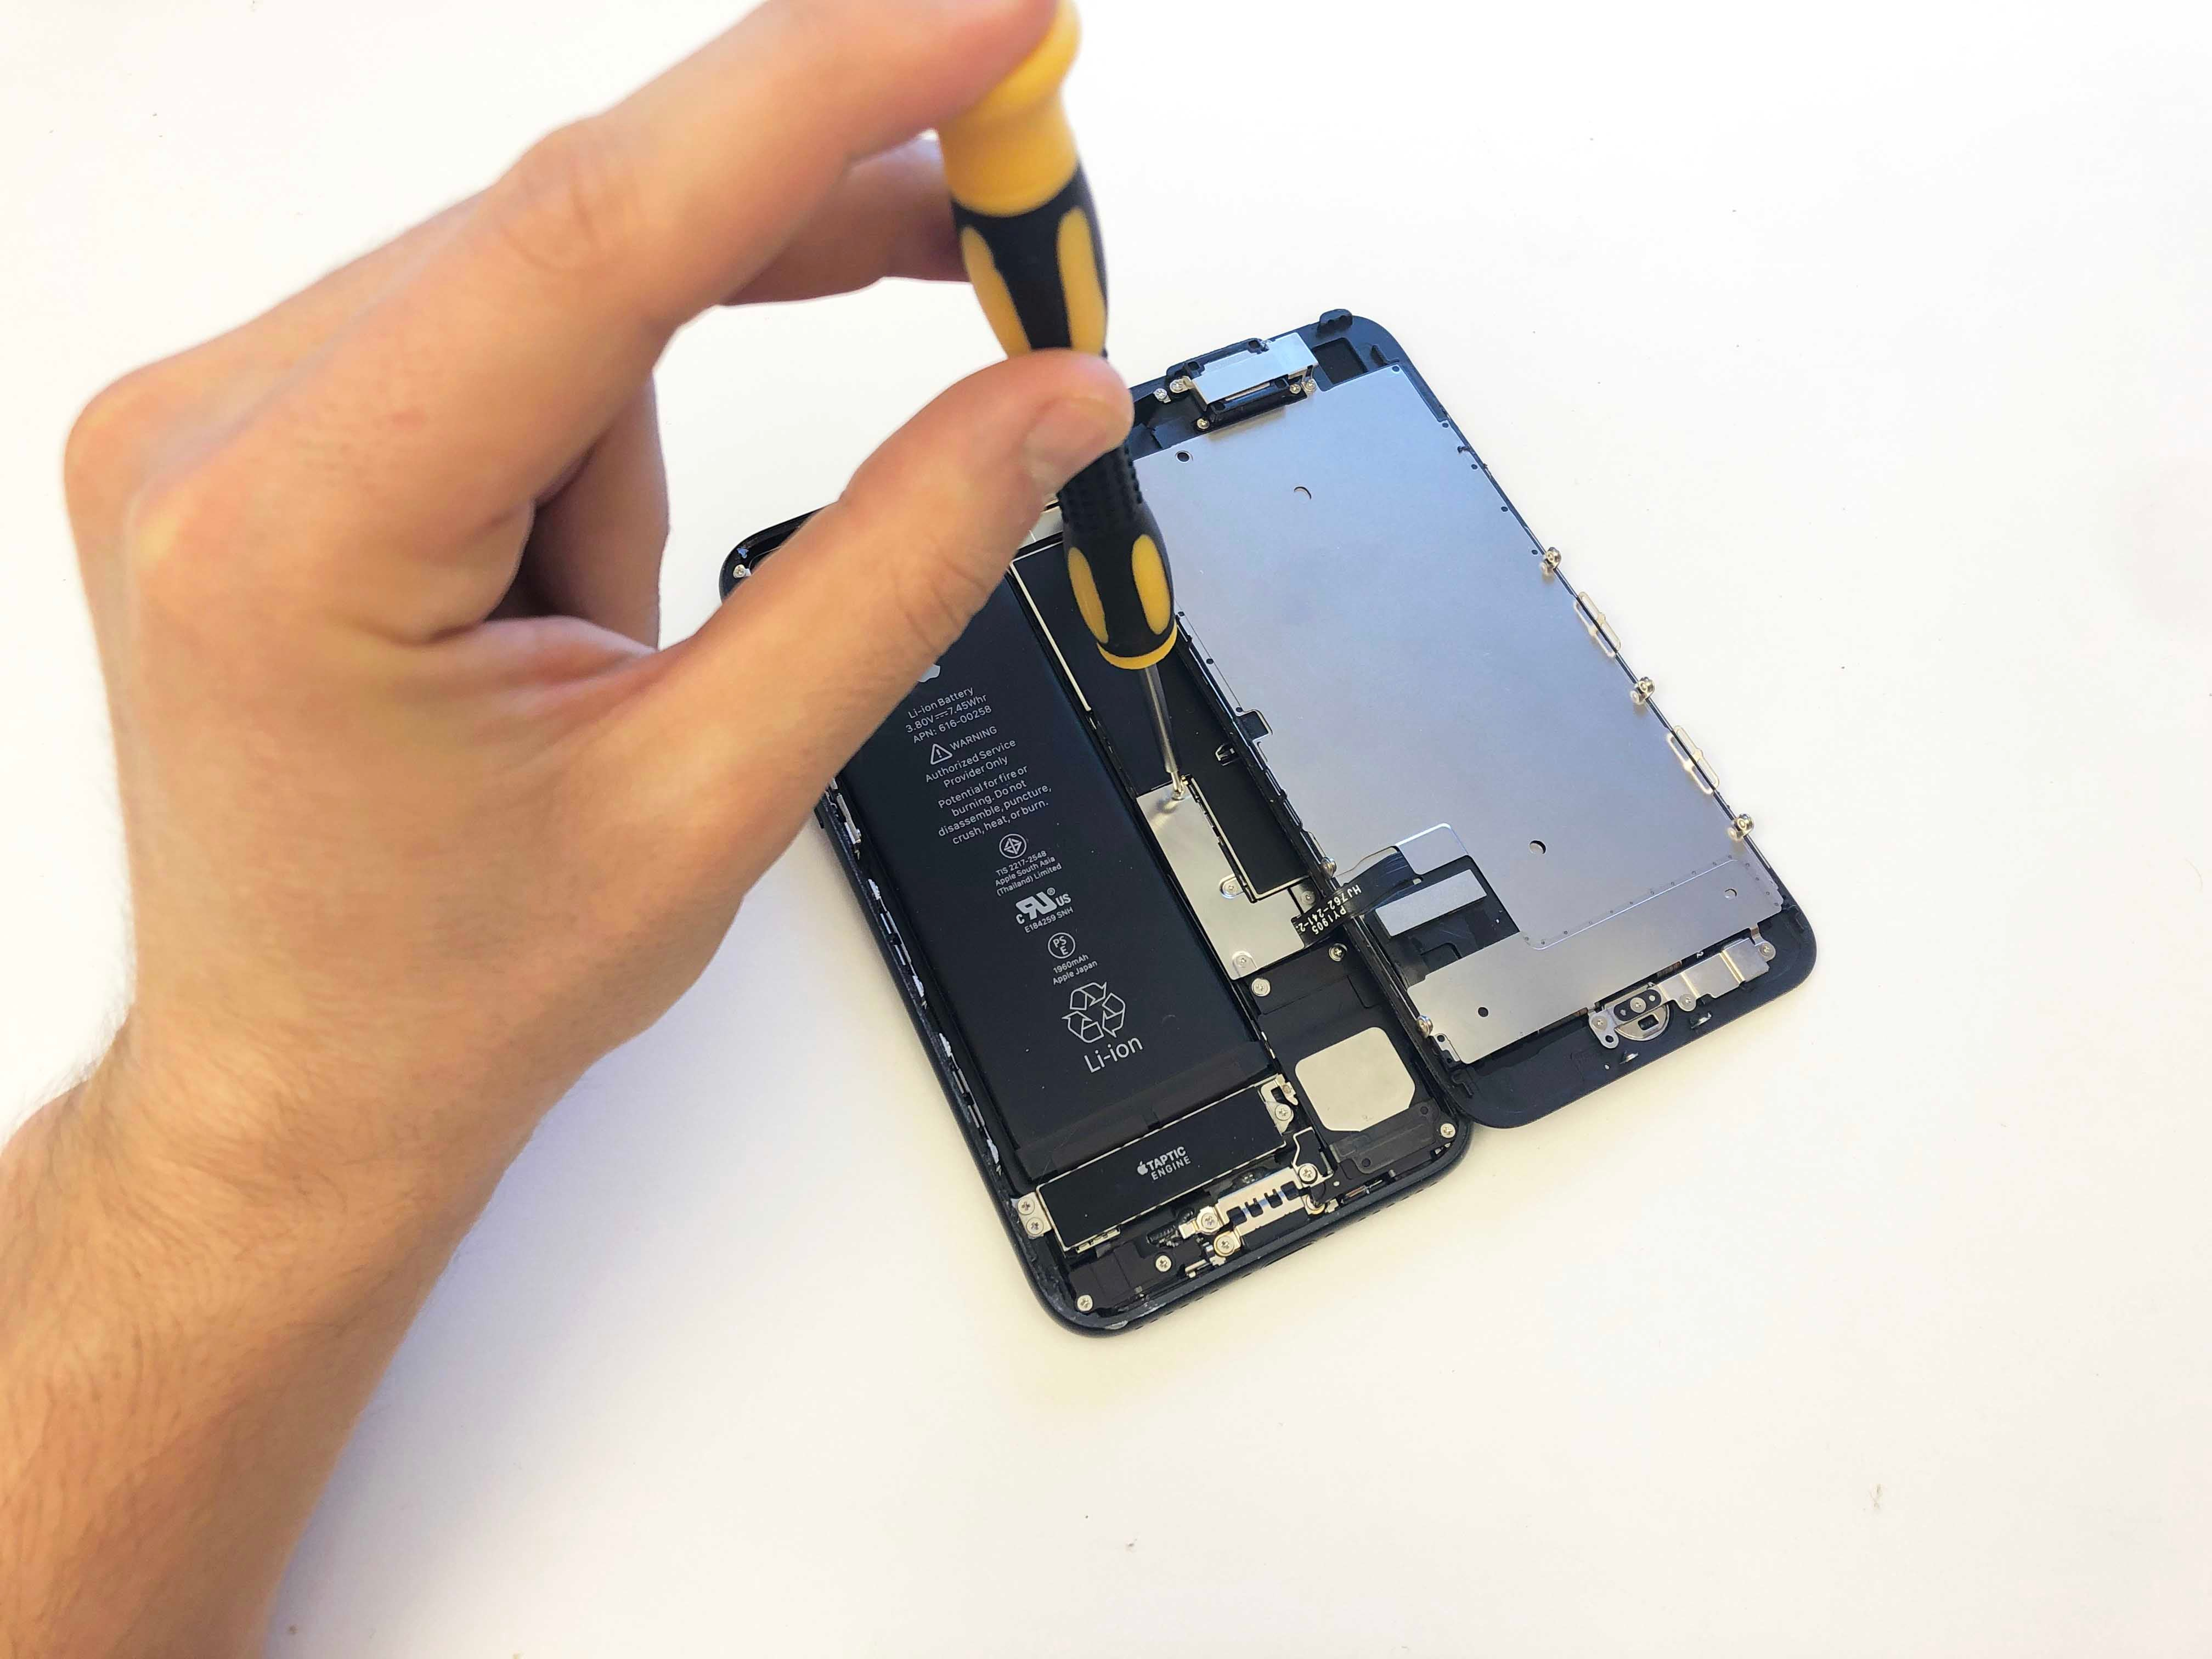 iPhone 7/7 Plus Battery Replacement - Testing the new battery - 1